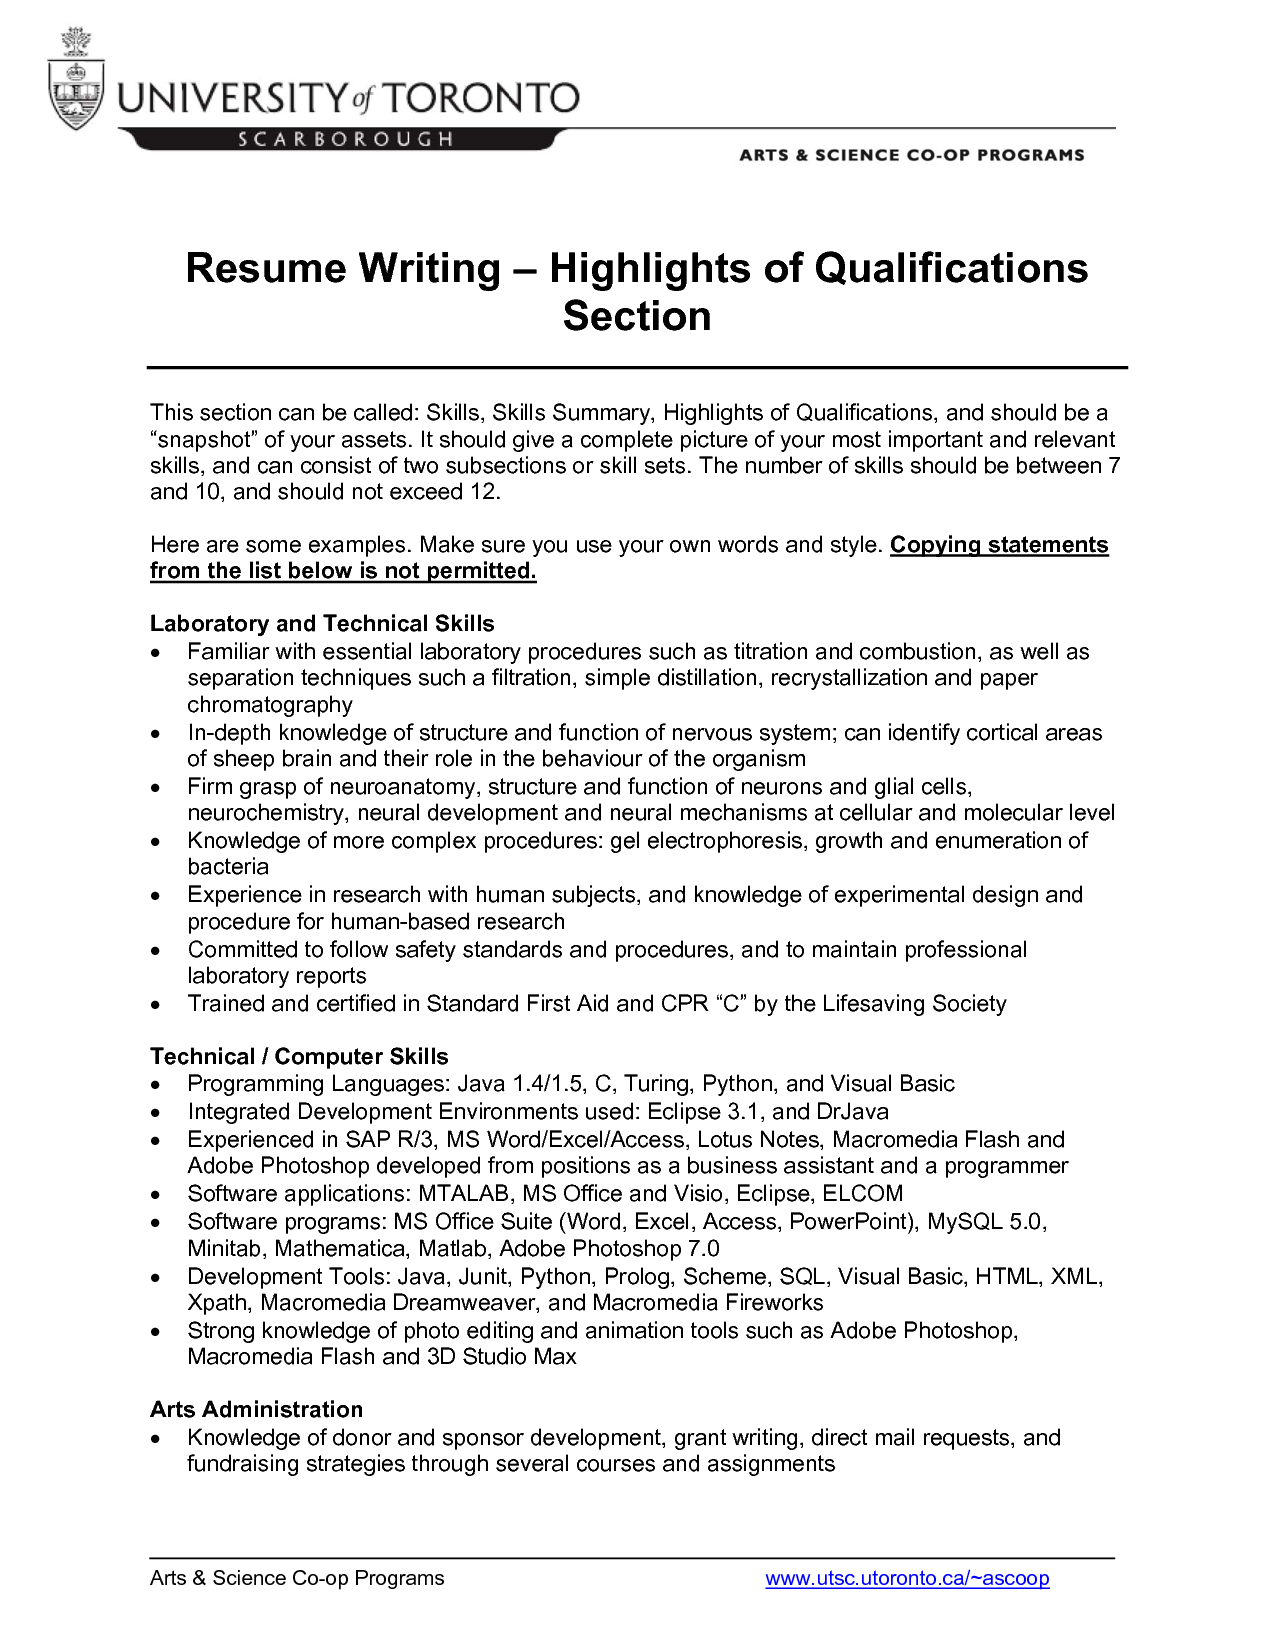 Computer Skills Qualifications Resume    Http://www.resumecareer.info/computer